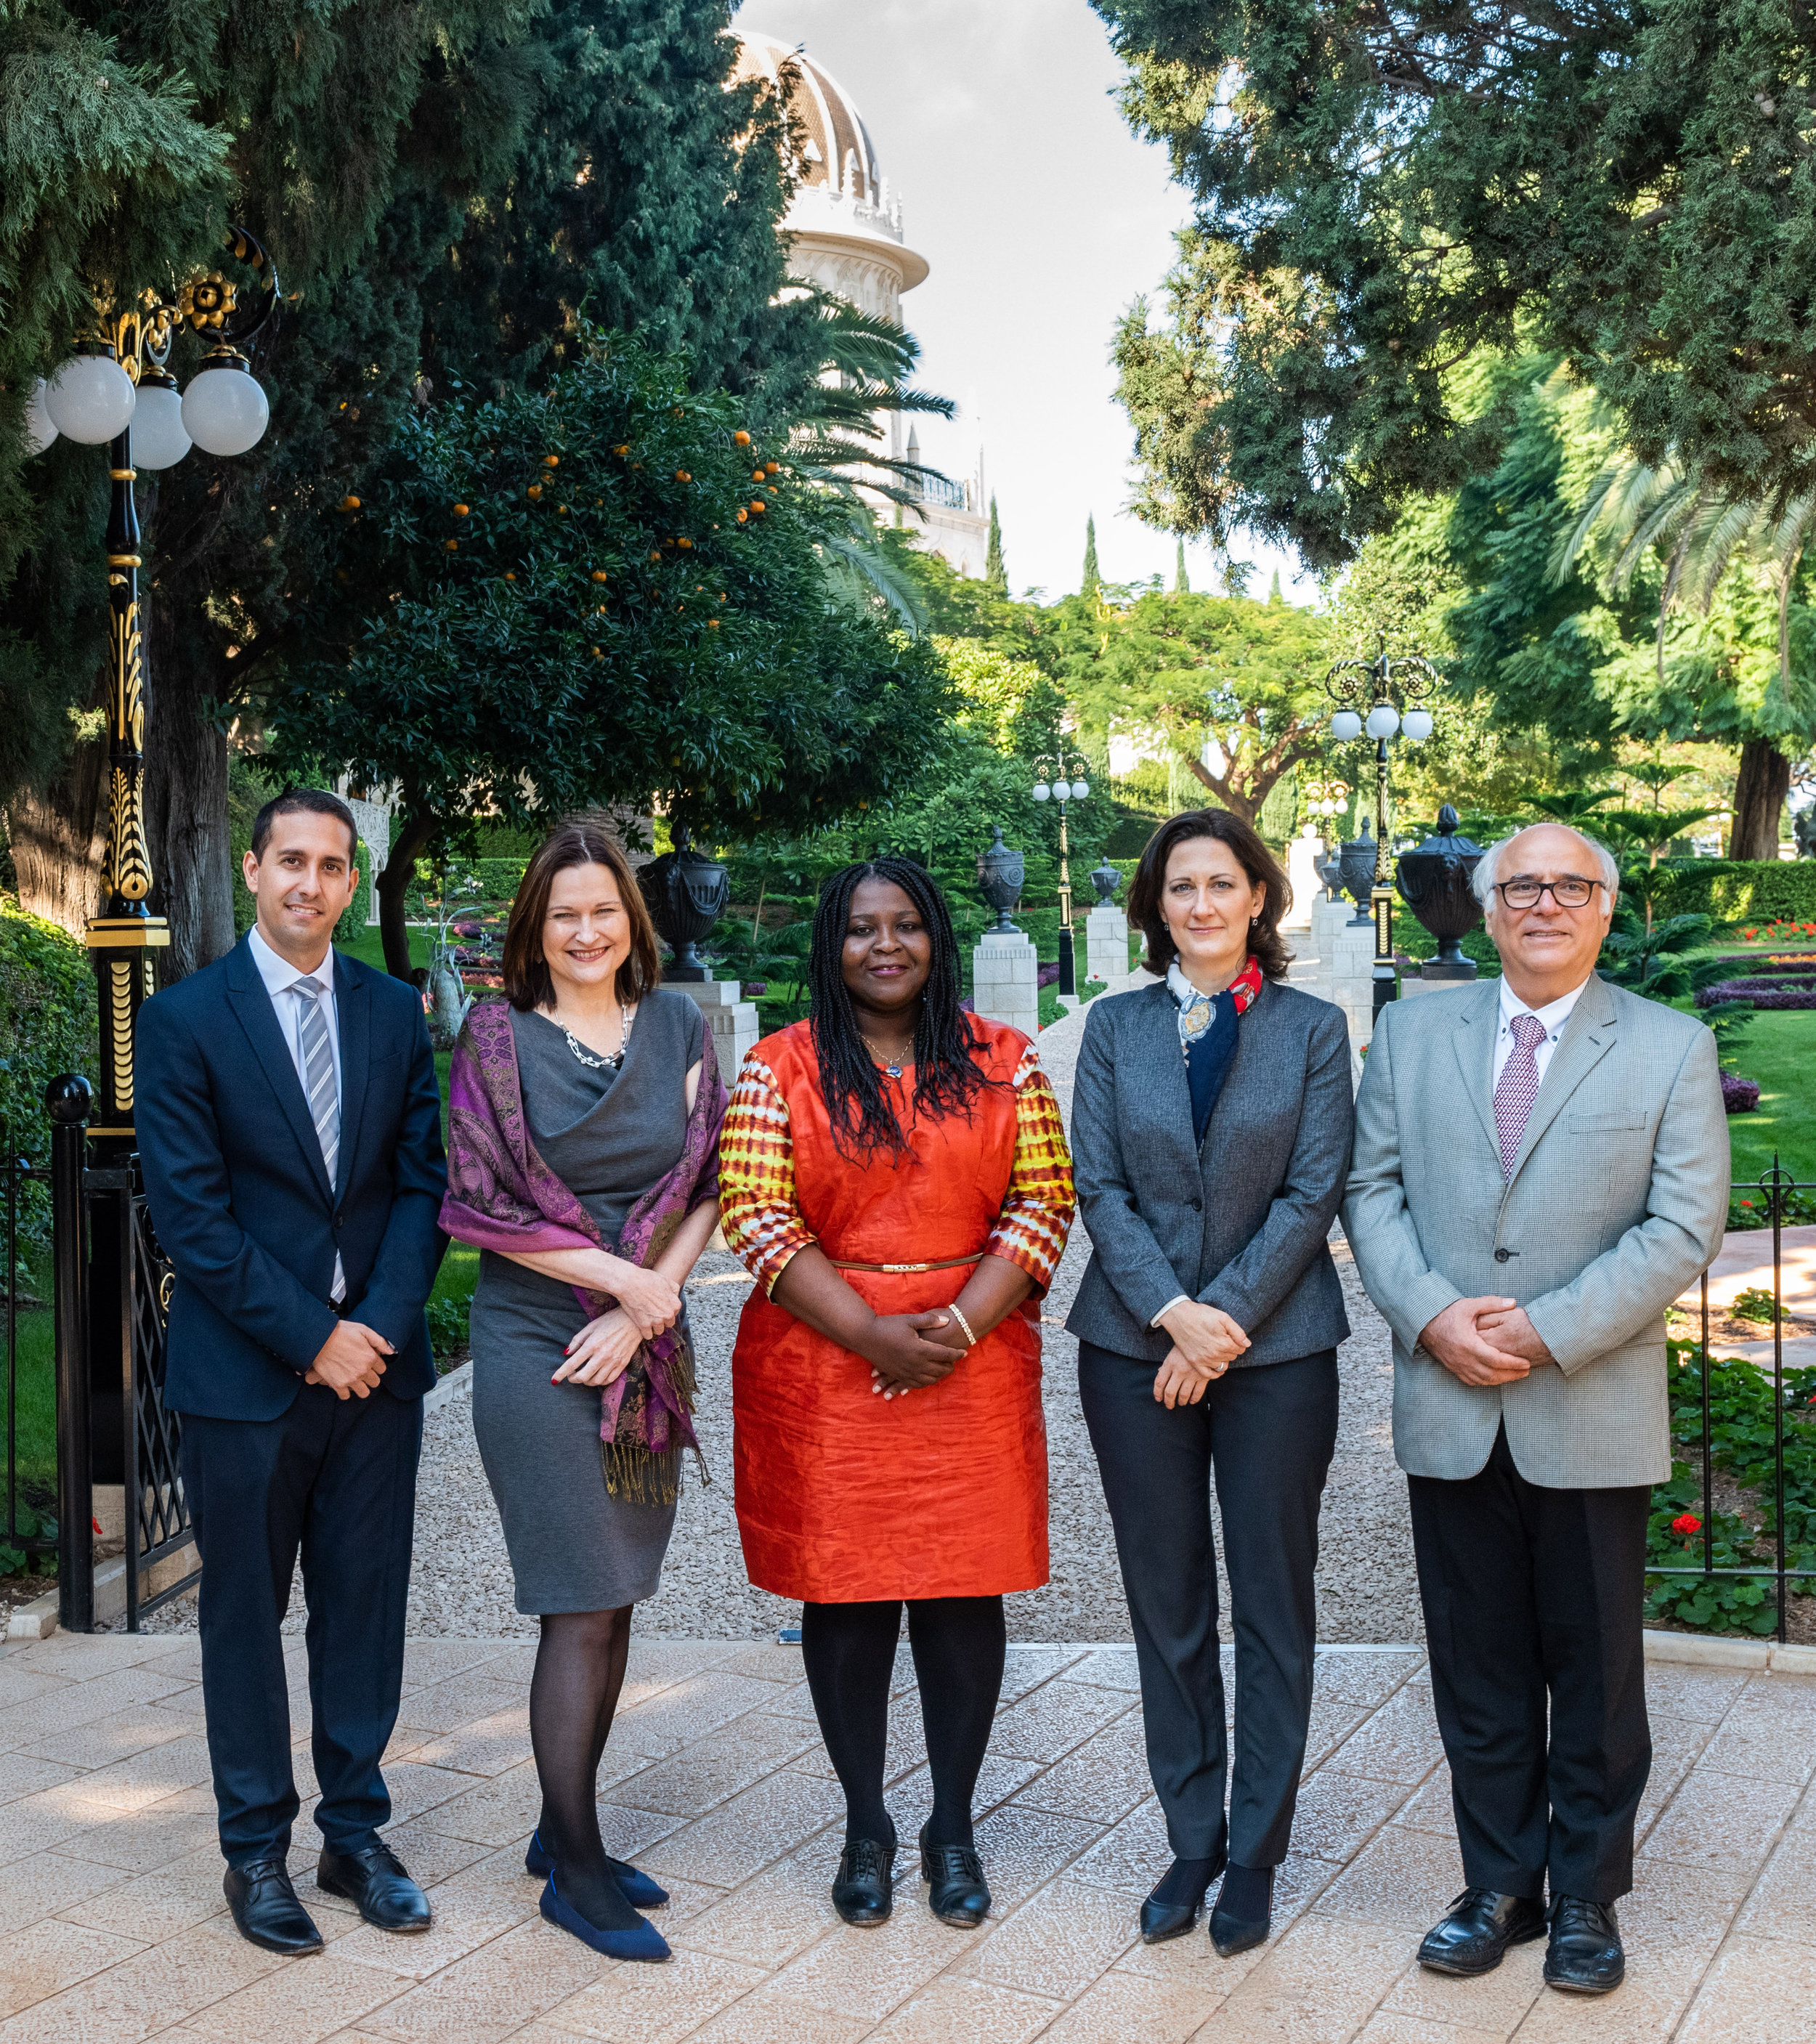 Source of photo:  Bahá'í World News Service  (copyright © Bahá'í International Community). The members of the board of directors of the Baha'i International Development Organization were appointed for a five-year term beginning in November. The directors are (from left) Sina Rahmanian, Lori McLaughlin Noguchi, Maame Brodwemaba Nketsiah, Elisa Caney, and George Soraya.